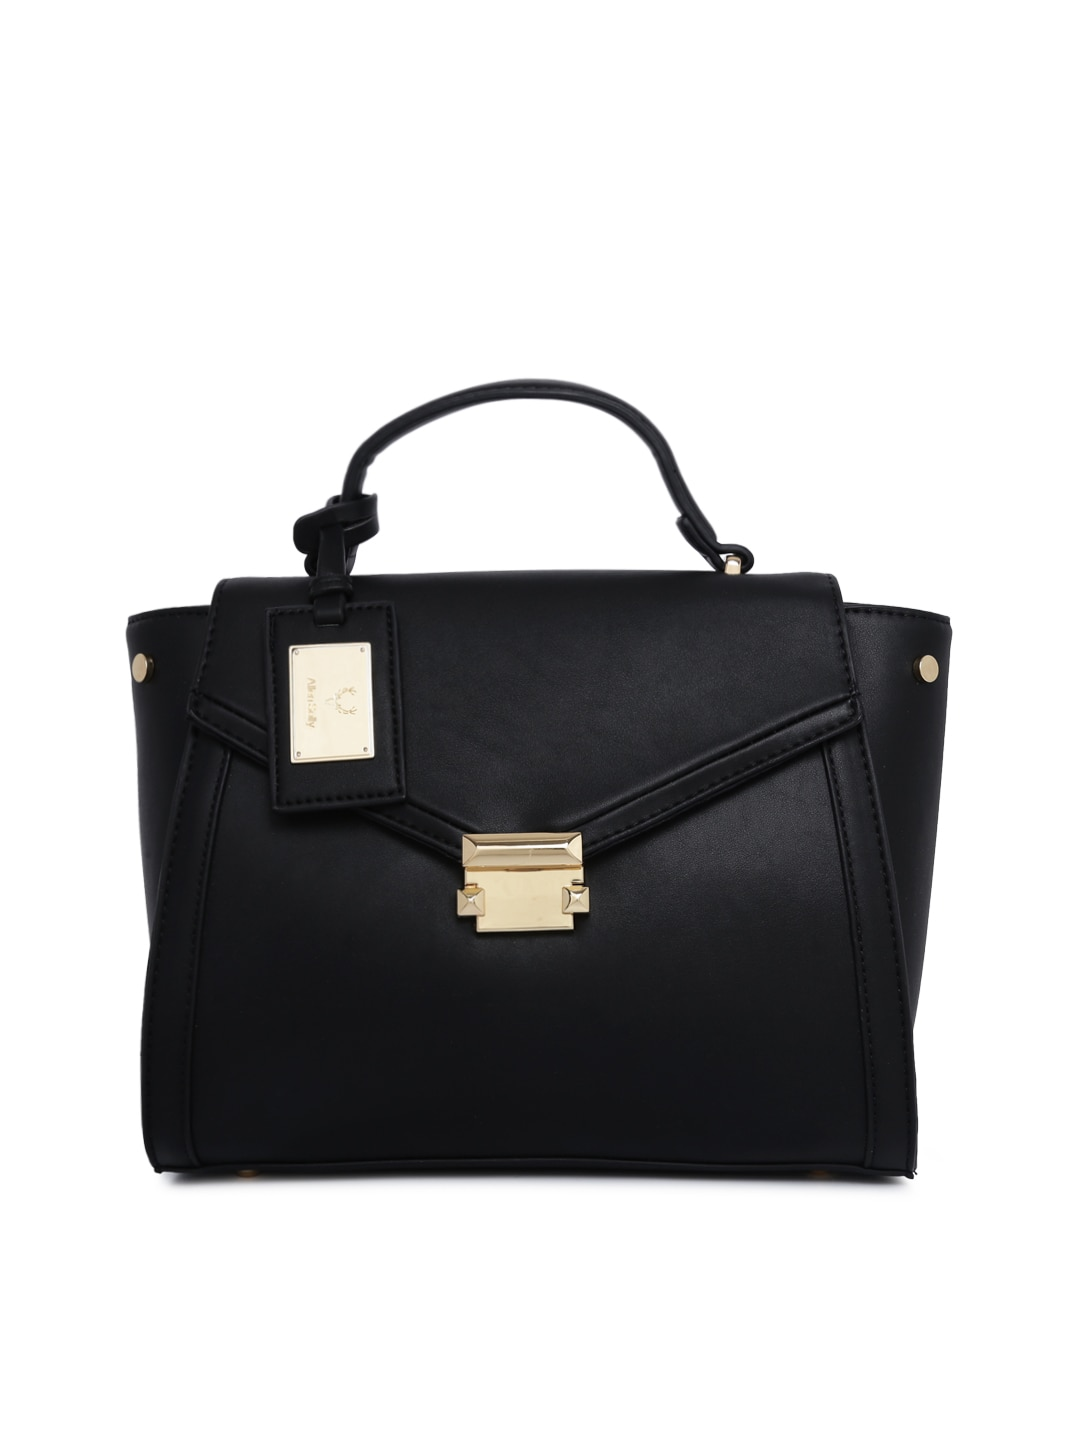 0443cb87f7be Allen Solly Black Solid Satchel